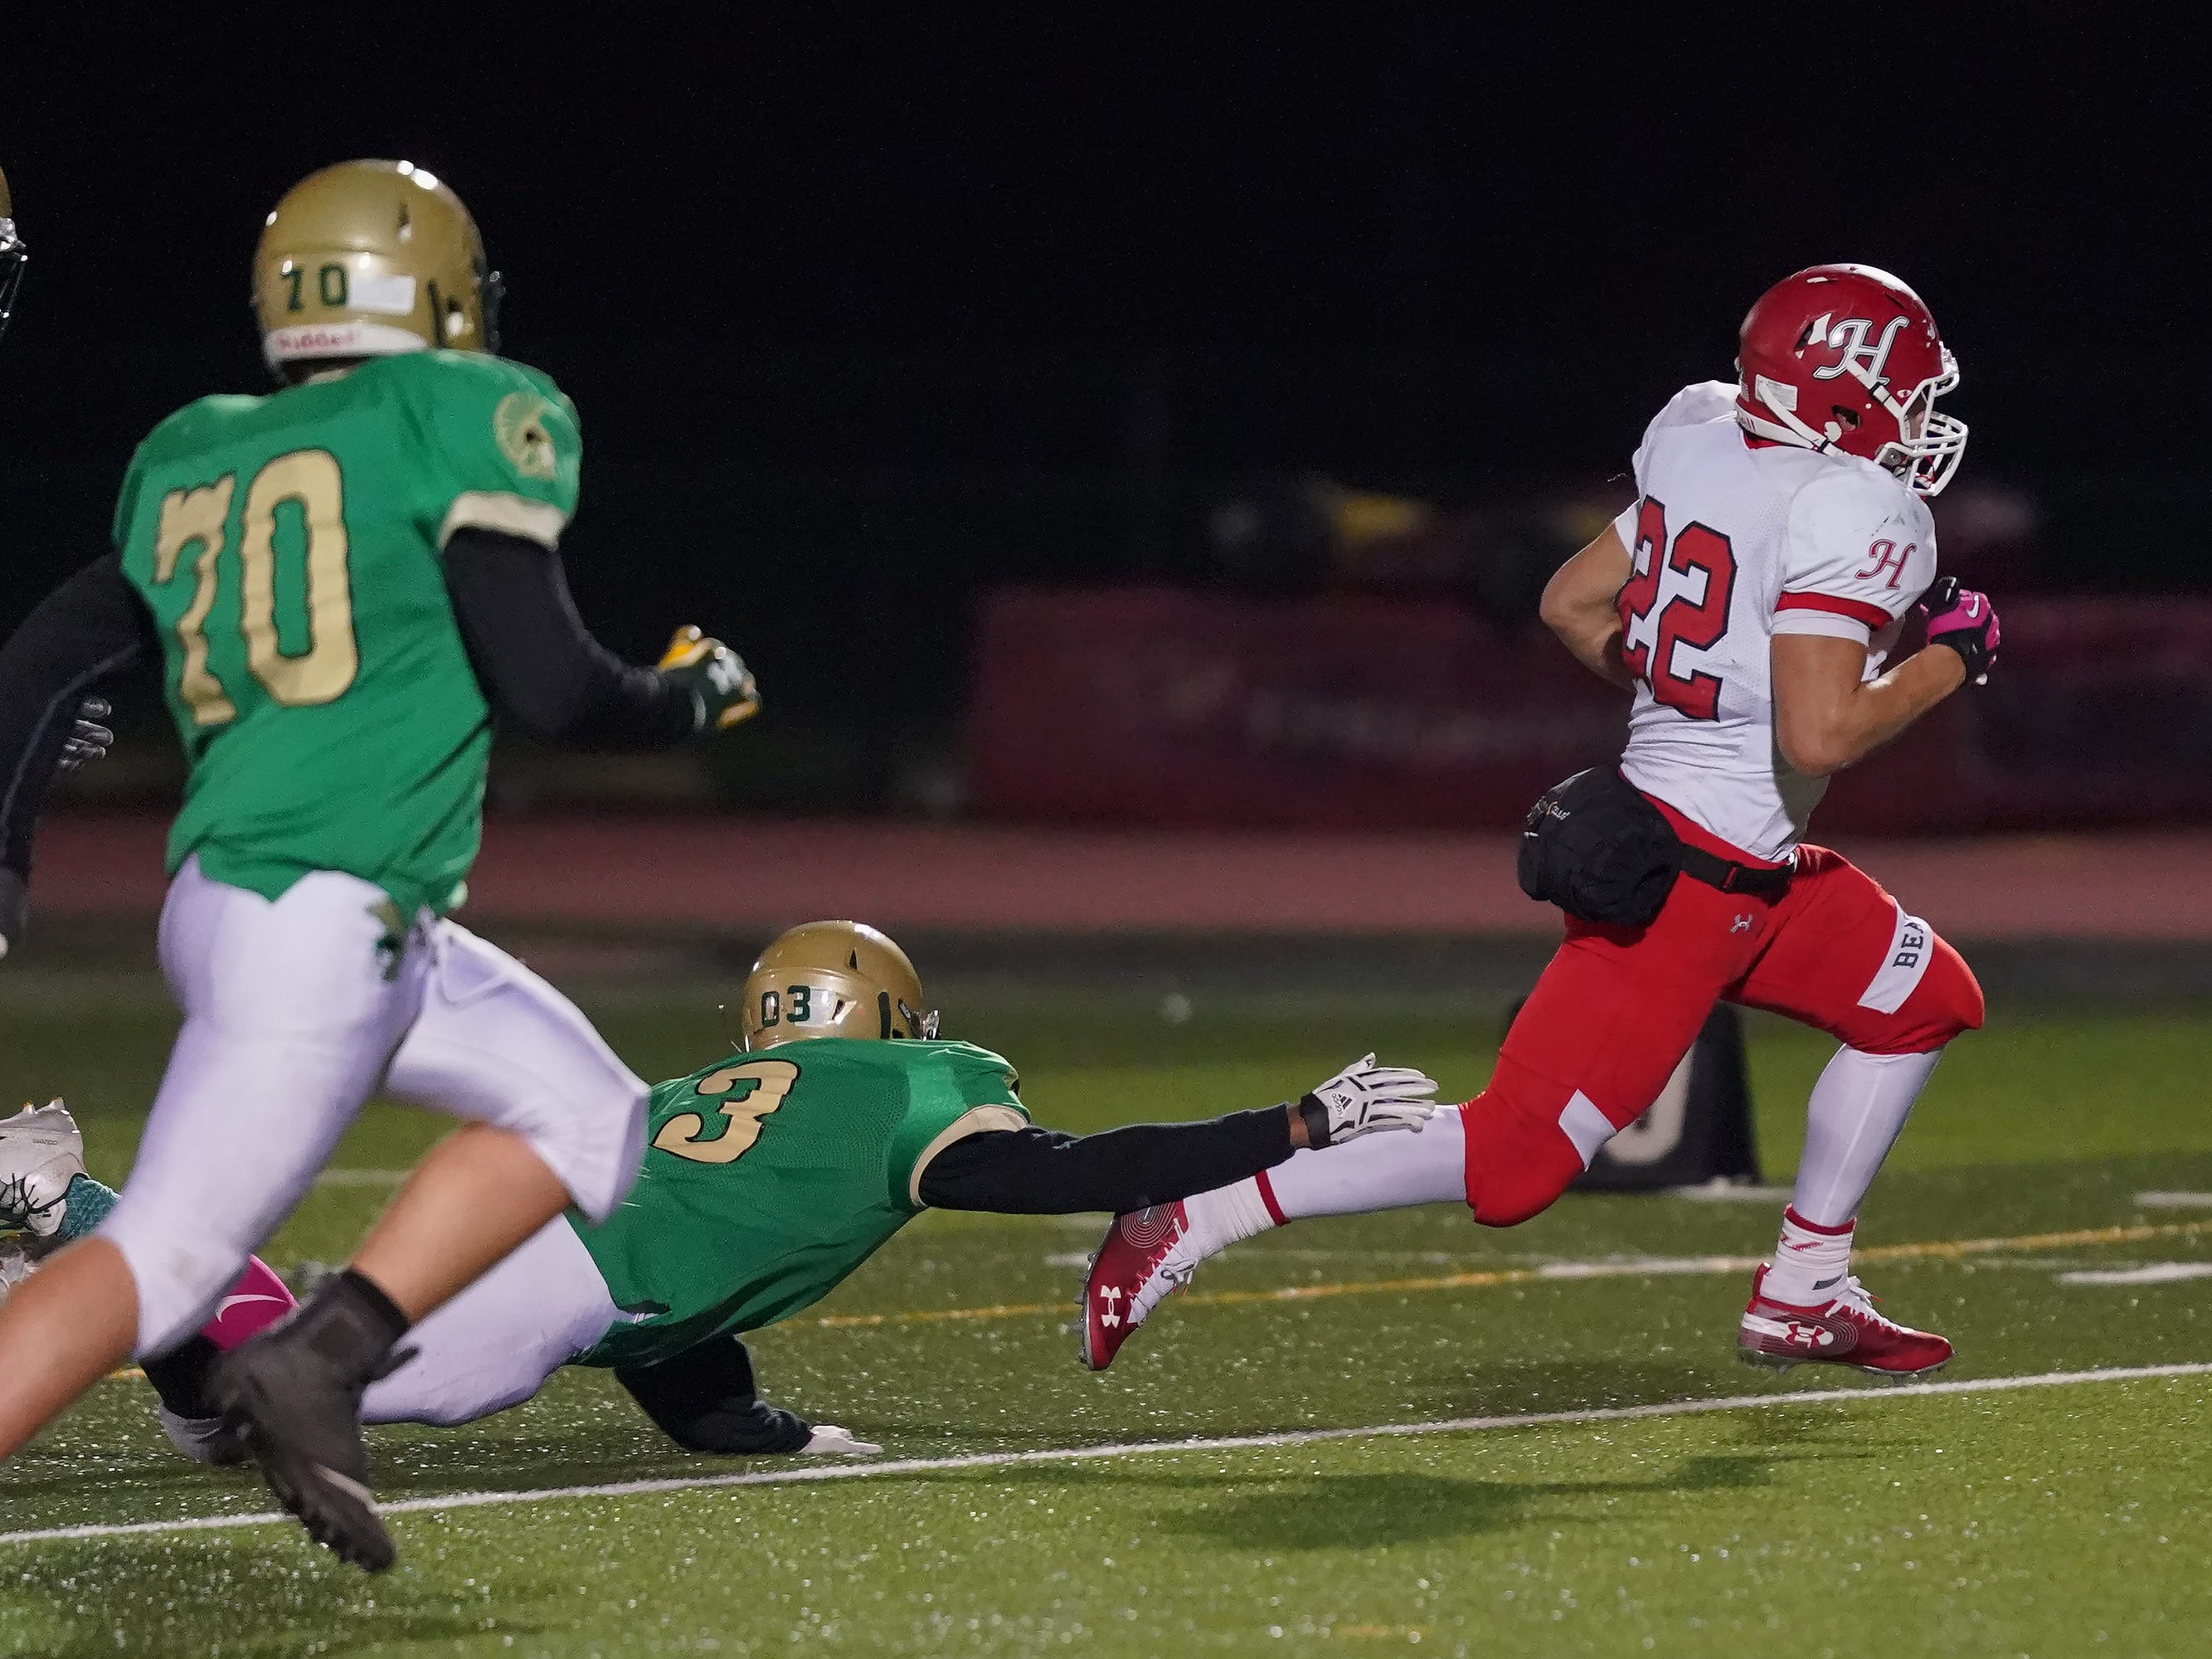 Jose Concepcion (22) of Hortonville breaks free from the Oshkosh North defense to score a touchdown. The Oshkosh North Spartans hosted the Hortonville Polar Bears in an FVA-South conference matchup Friday evening, October 12, 2018 at J. J. Keller Field at Titan Stadium.